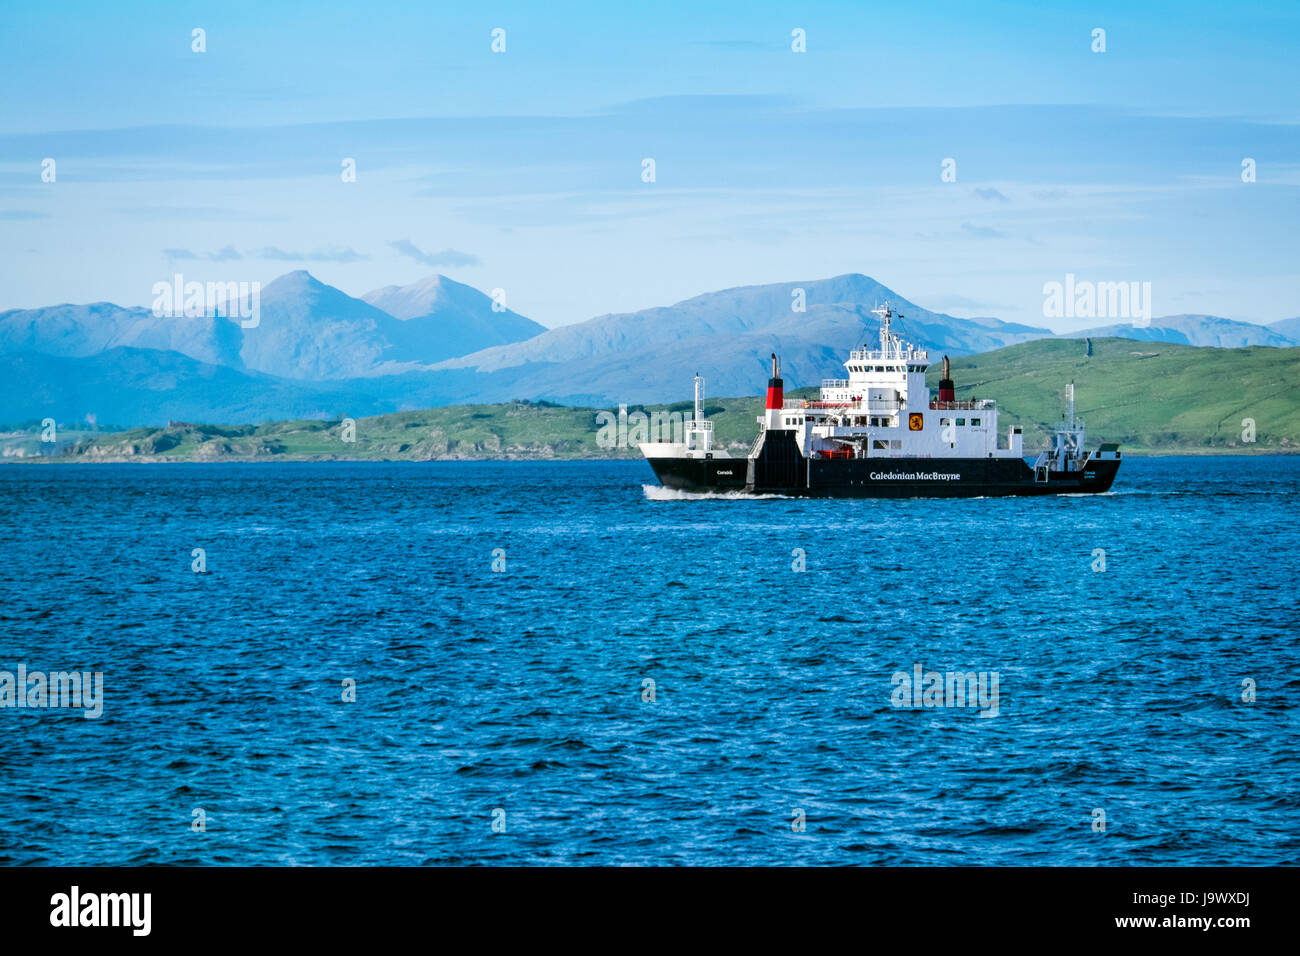 The Caledonian MacBrayne ( Cal Mac) ferry en route from Oban to Craignure on the island of Mull, Scotland - Stock Image